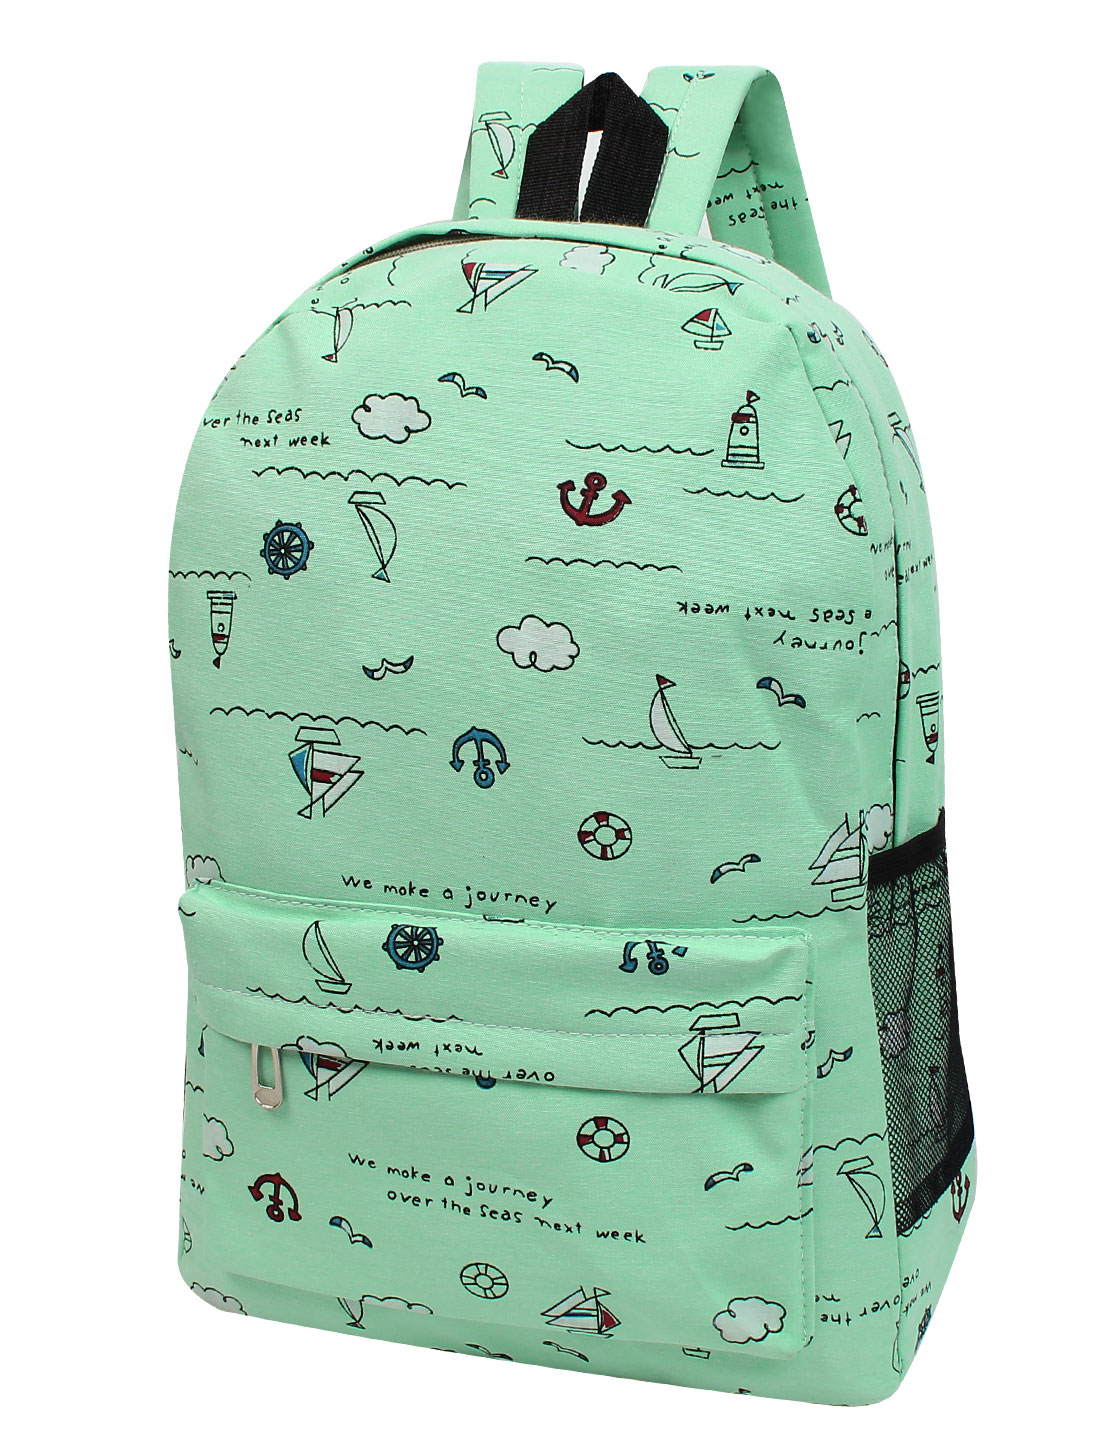 Preppy Style Sail Boat Printing Green Canvas Charming Backpack Bookbag